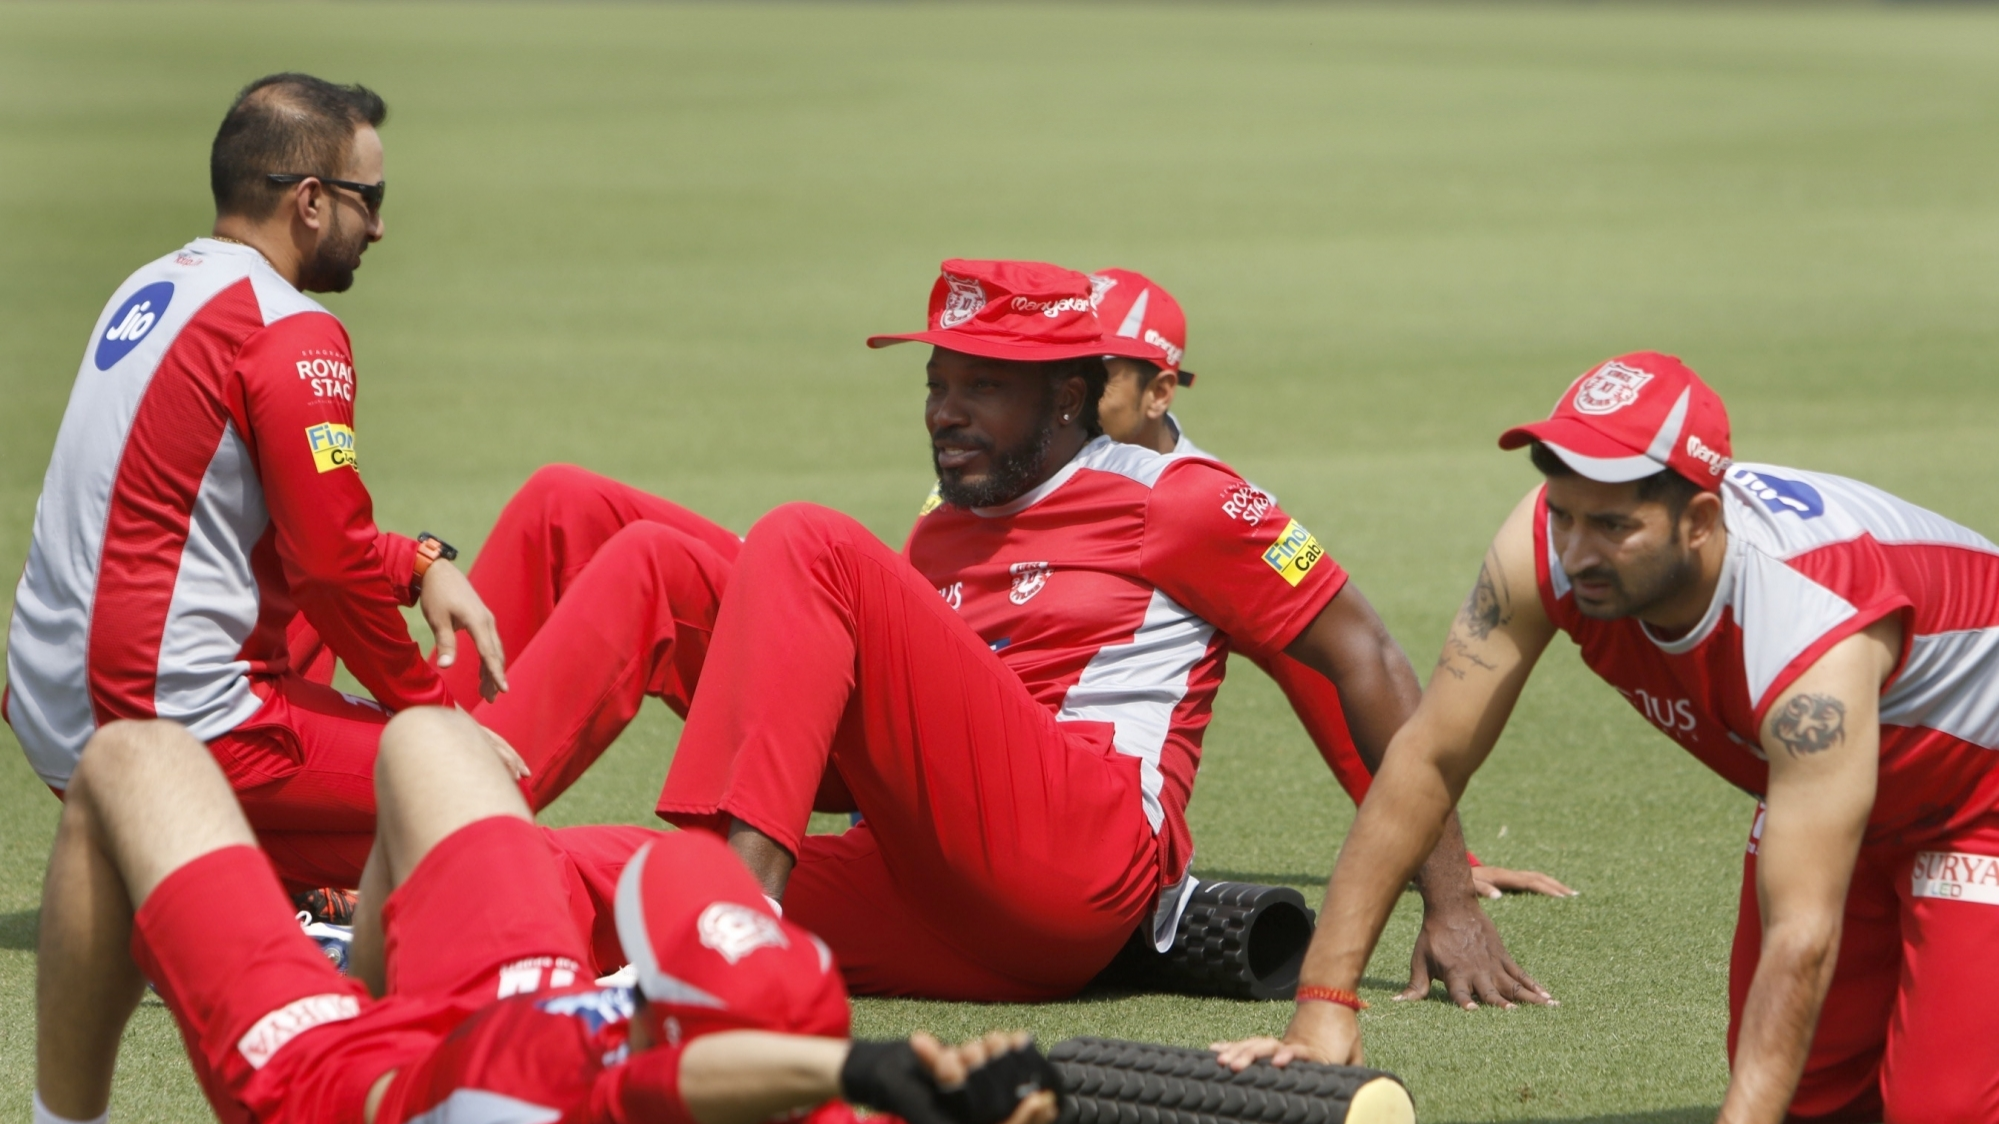 IPL 2018: Chris Gayle looking forward for an opportunity to represent Kings XI Punjab